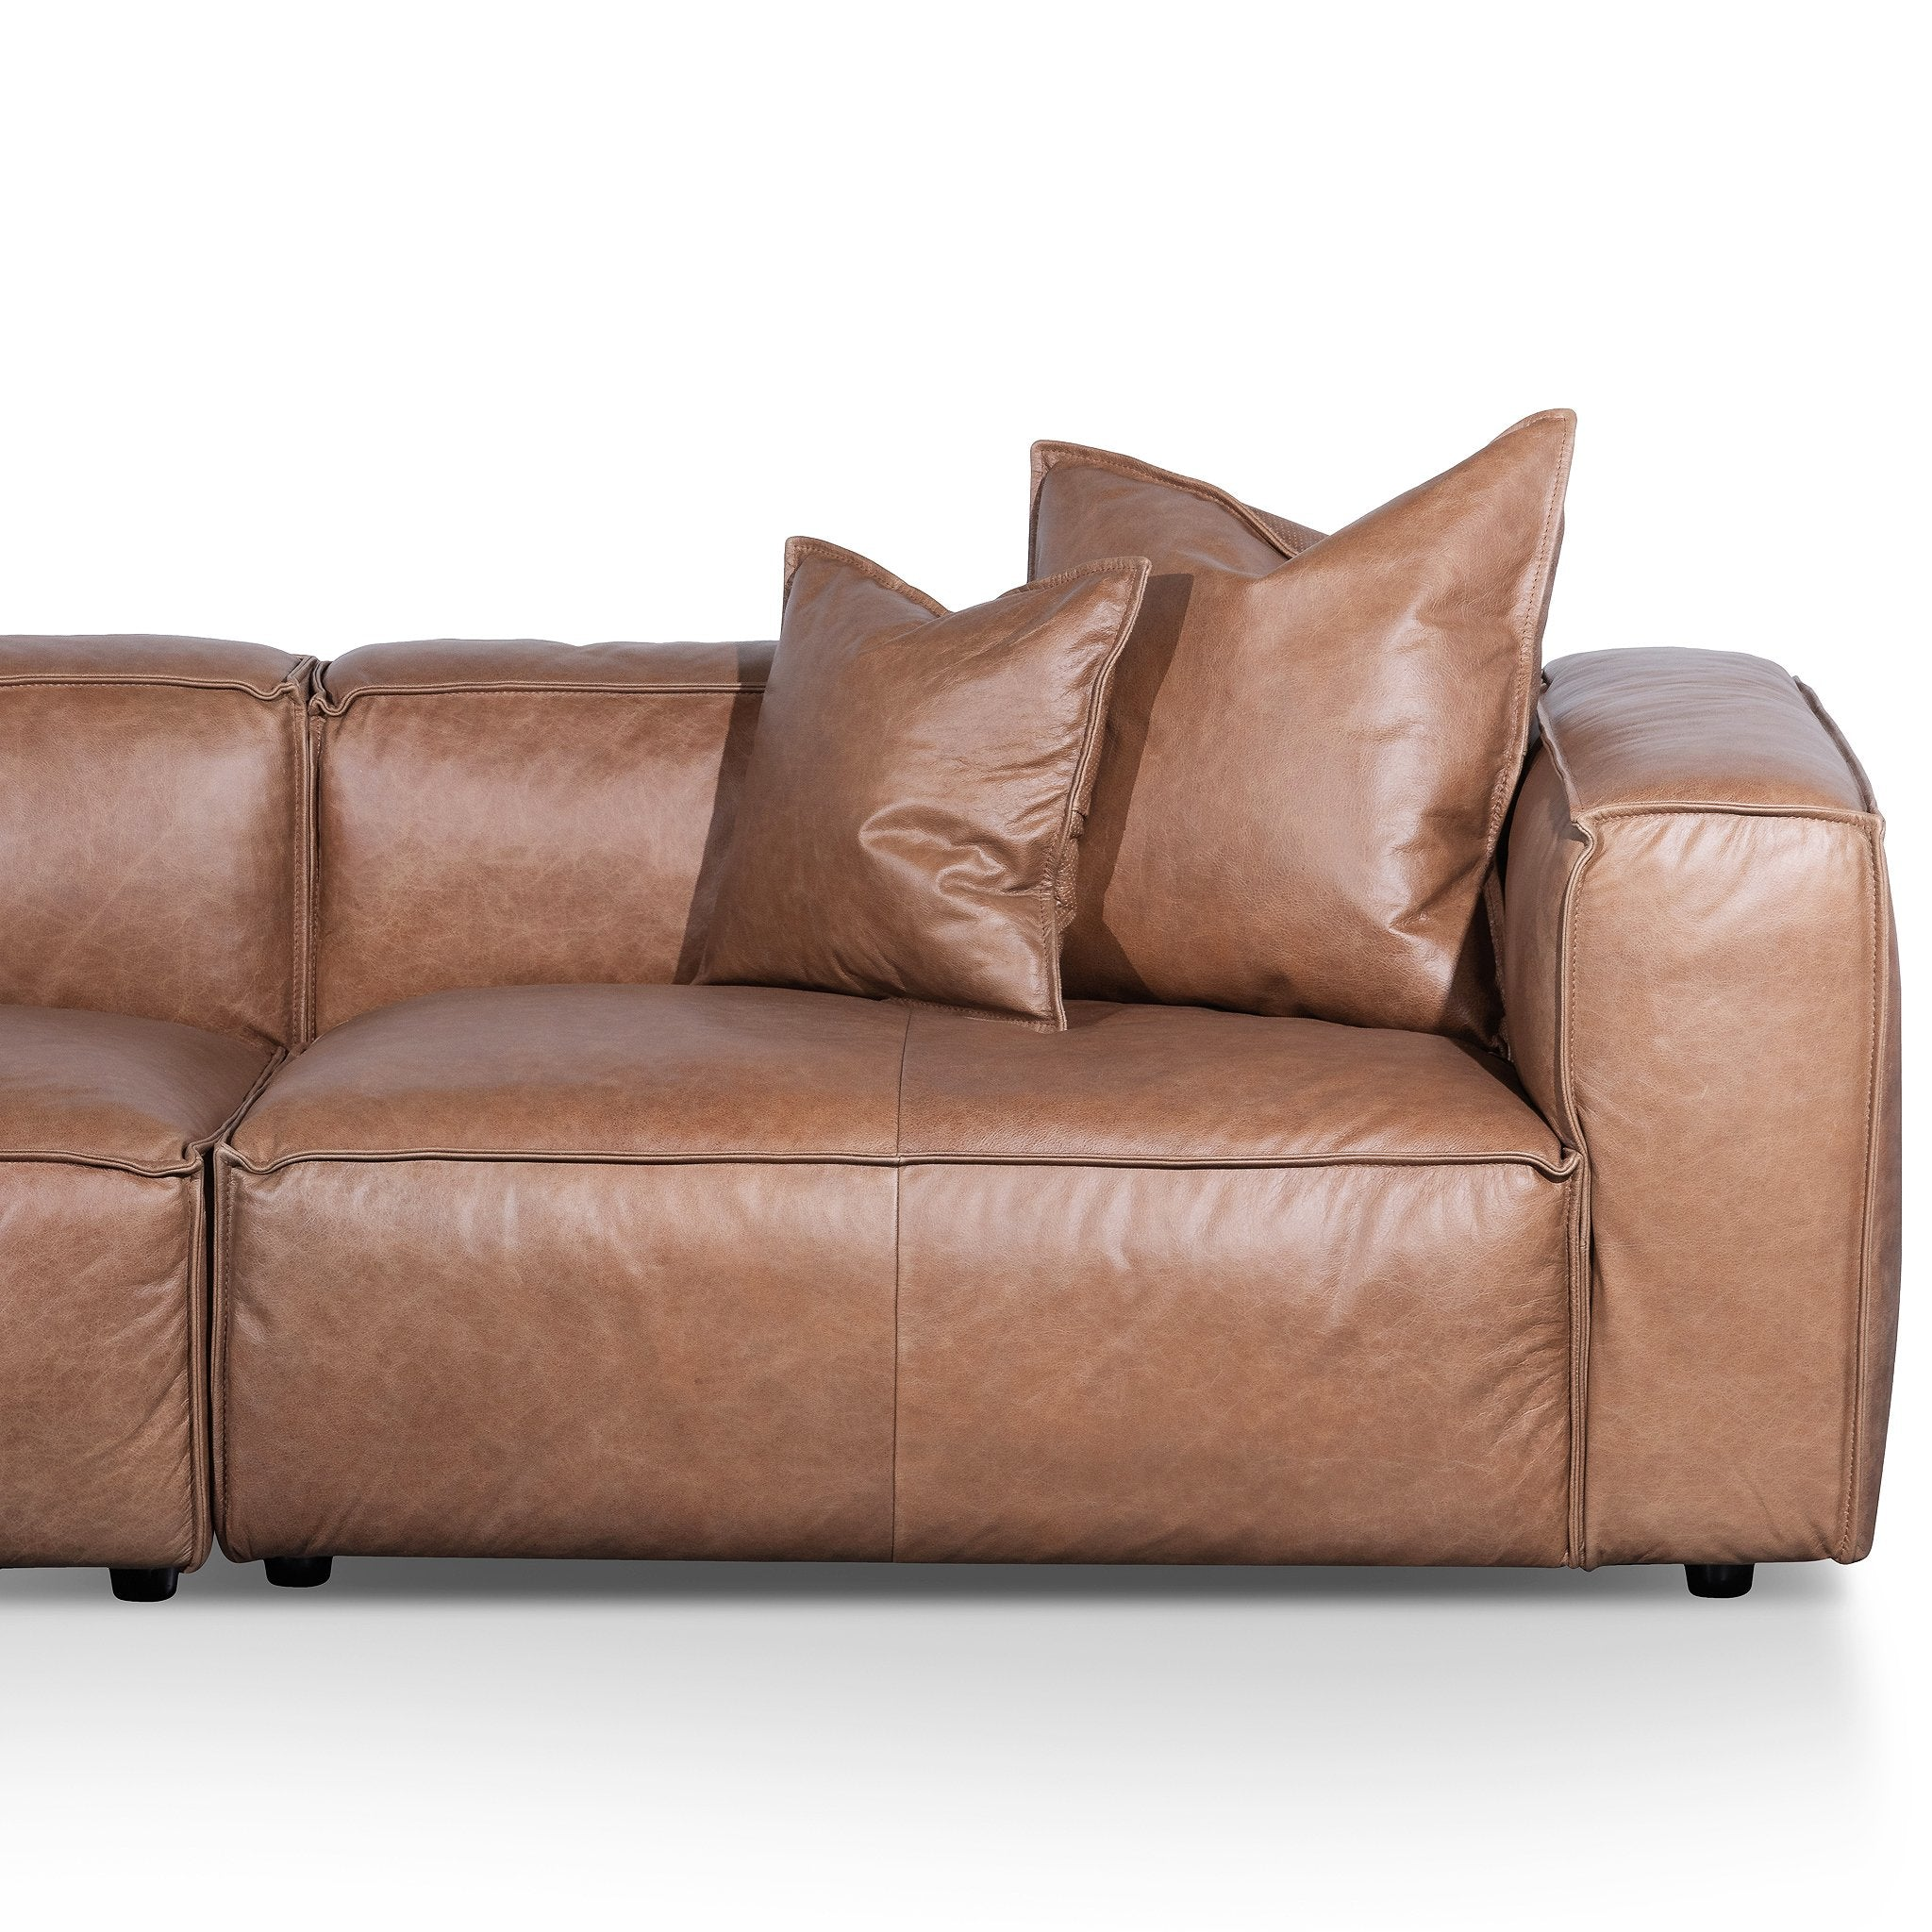 Picture of: Loft 3 Seater Sofa With Cushion And Pillow Saddle B Interior Secrets